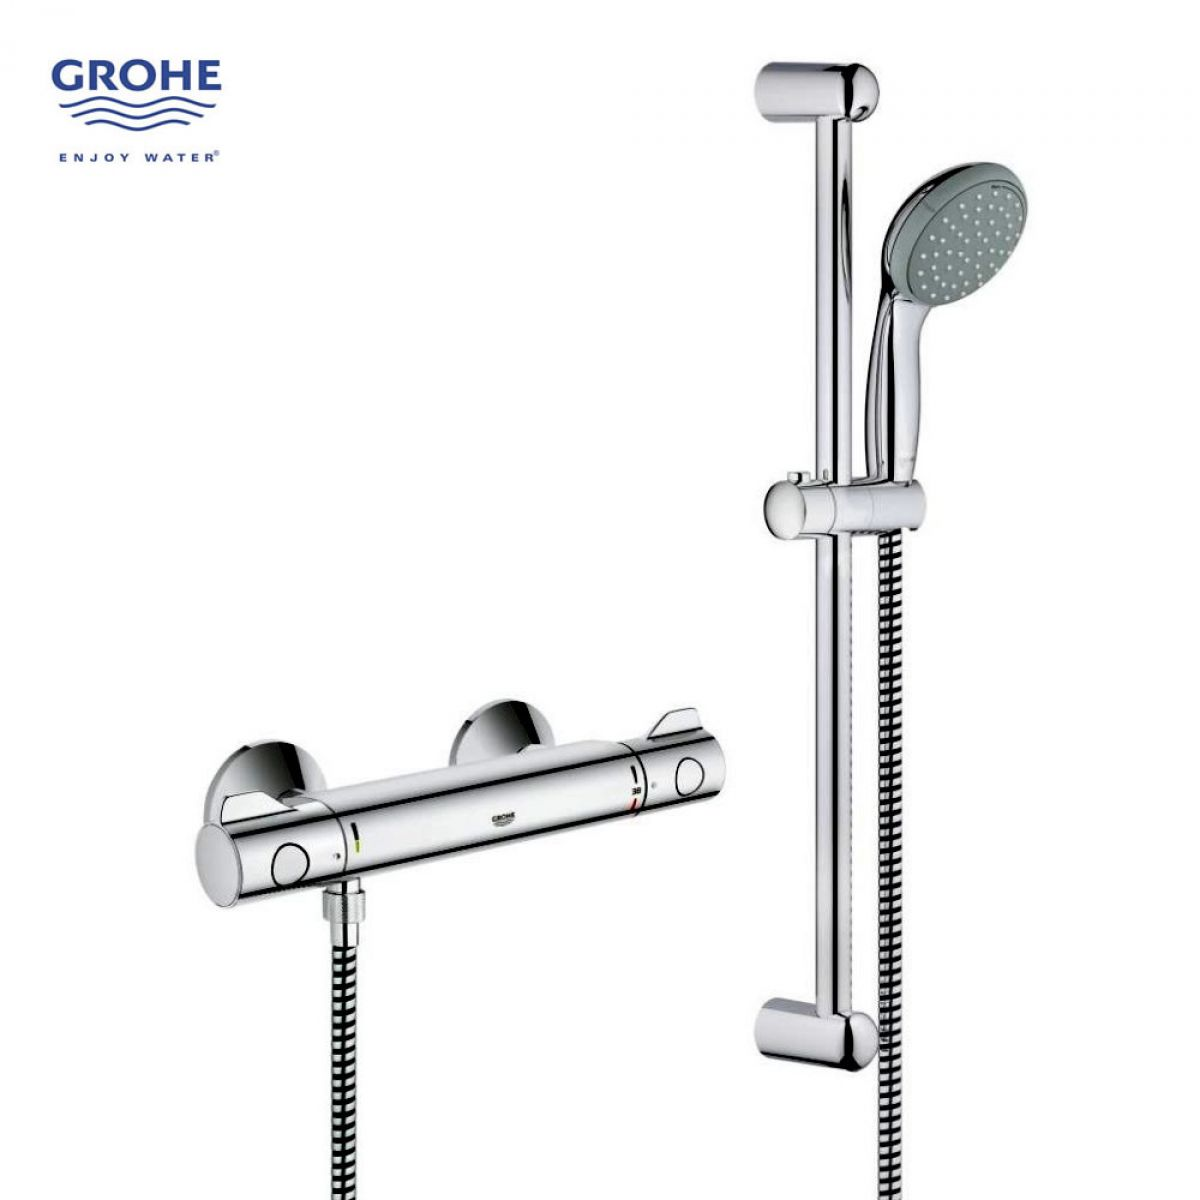 Grohtherm 800 Thermostatic shower mixer Kit : UK Bathrooms